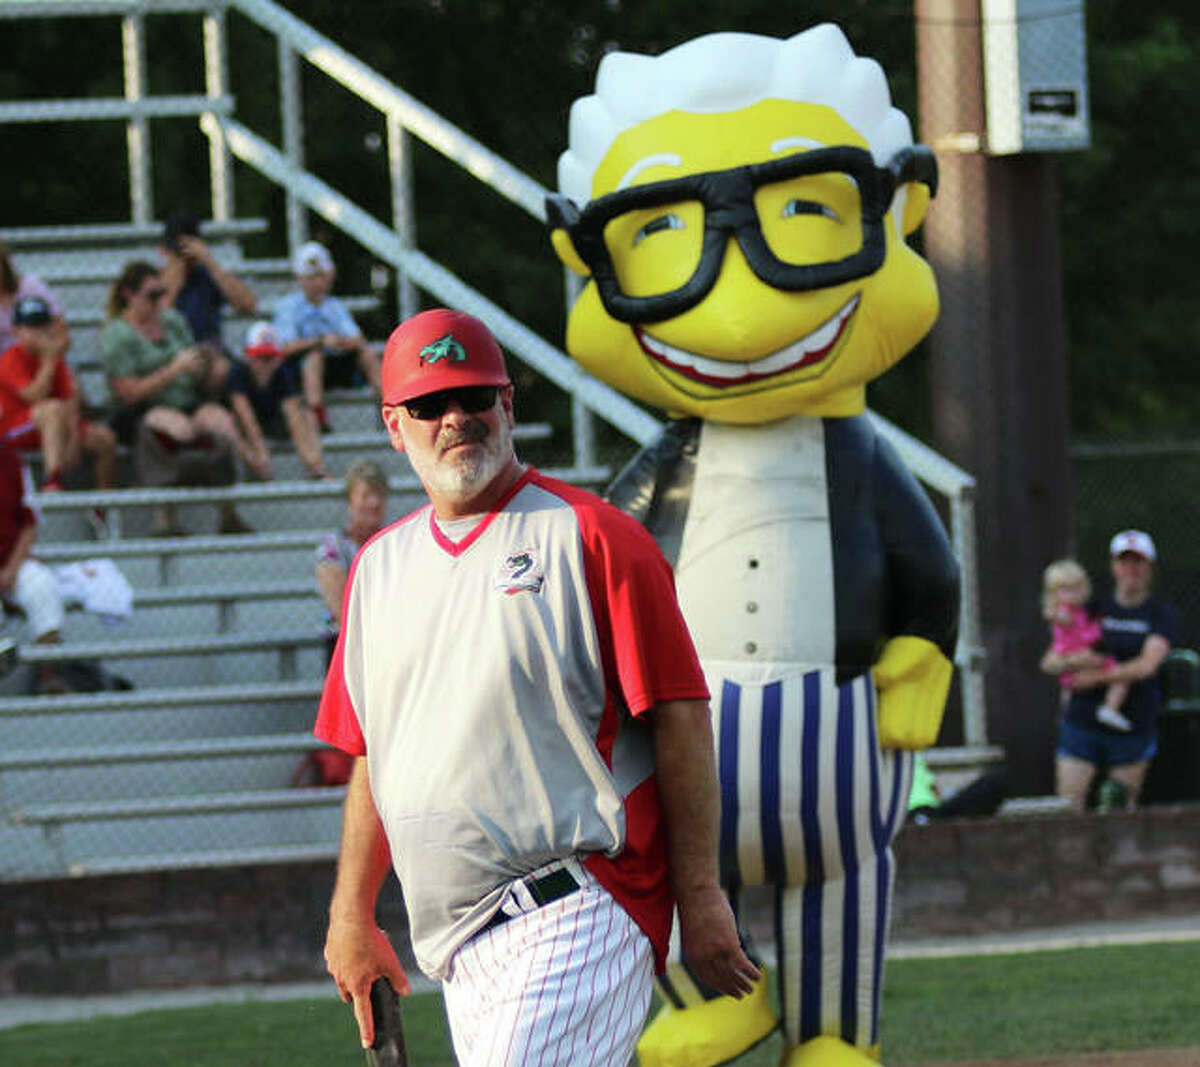 Alton River Dragons manager Darrell Handelsman walks back to the dugout between innings on ZOOsuperstars Night with mascot Harry Canary entertaining the crowd during a July 9 game at Hopkins Field in Alton.